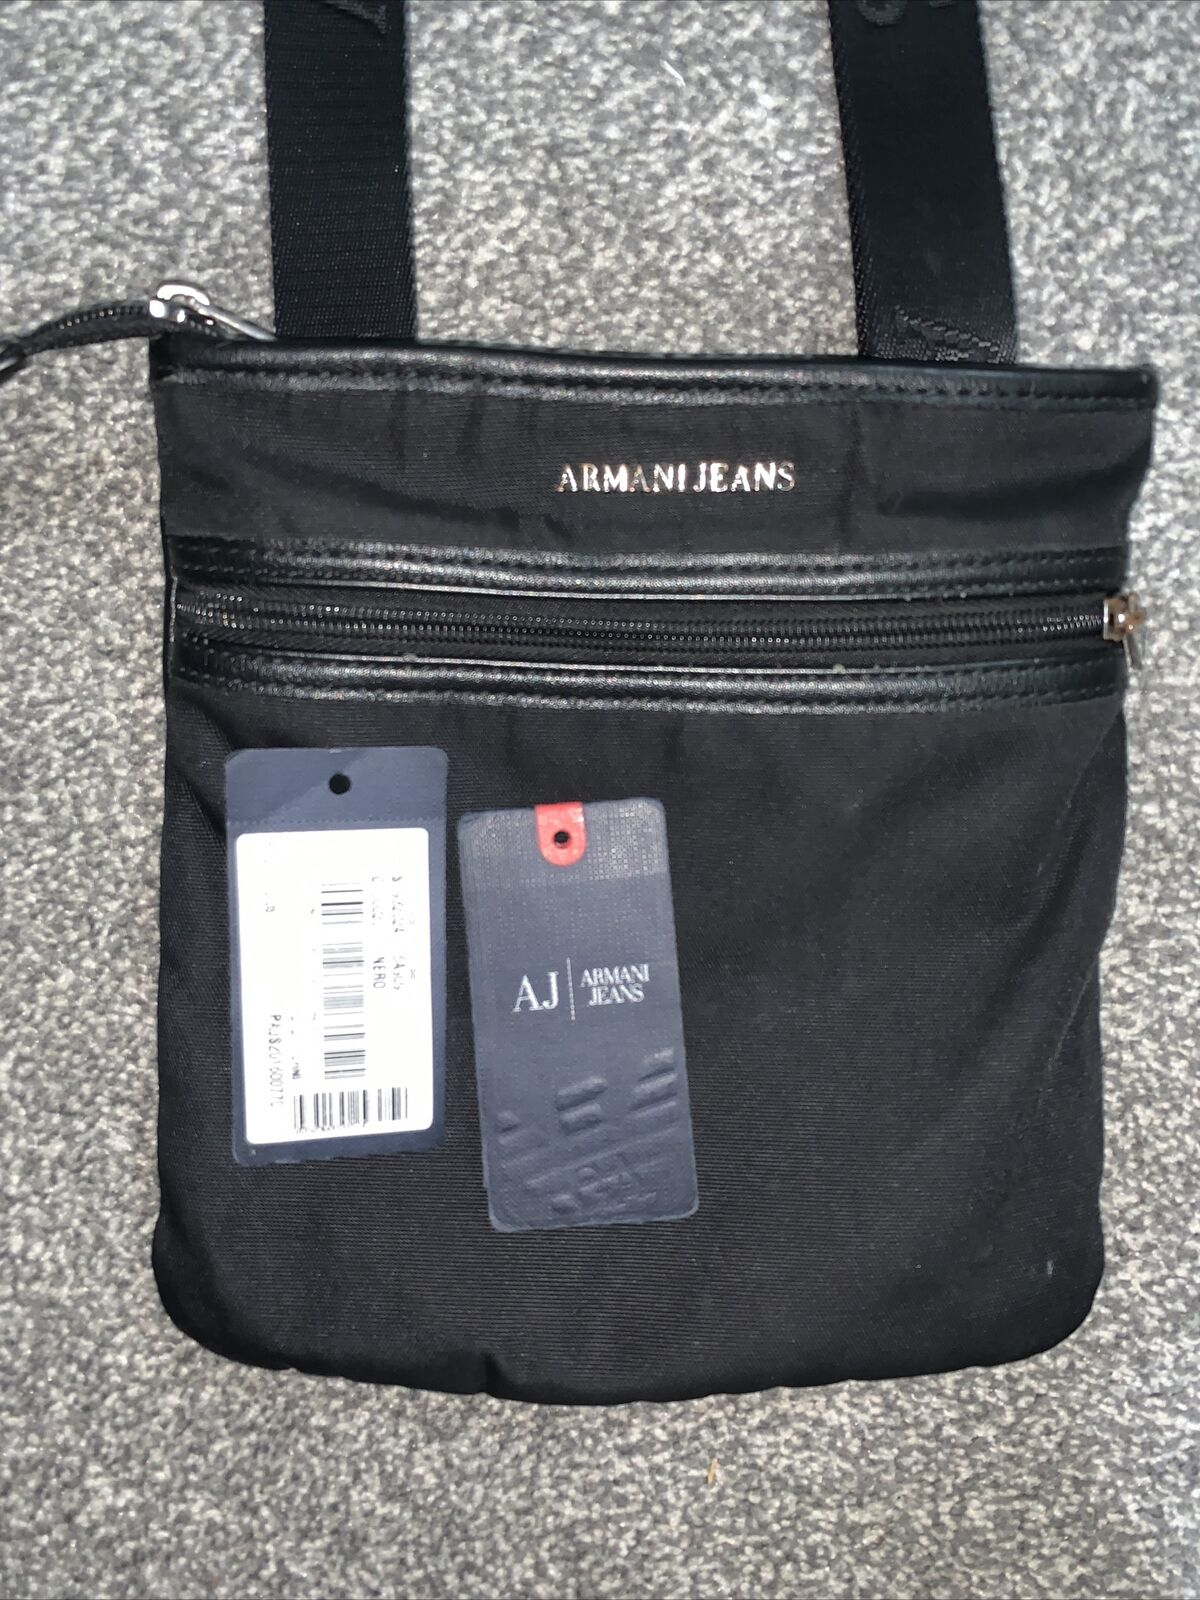 Armani Jeans Man Bag - Free Next Day Delivery ✅